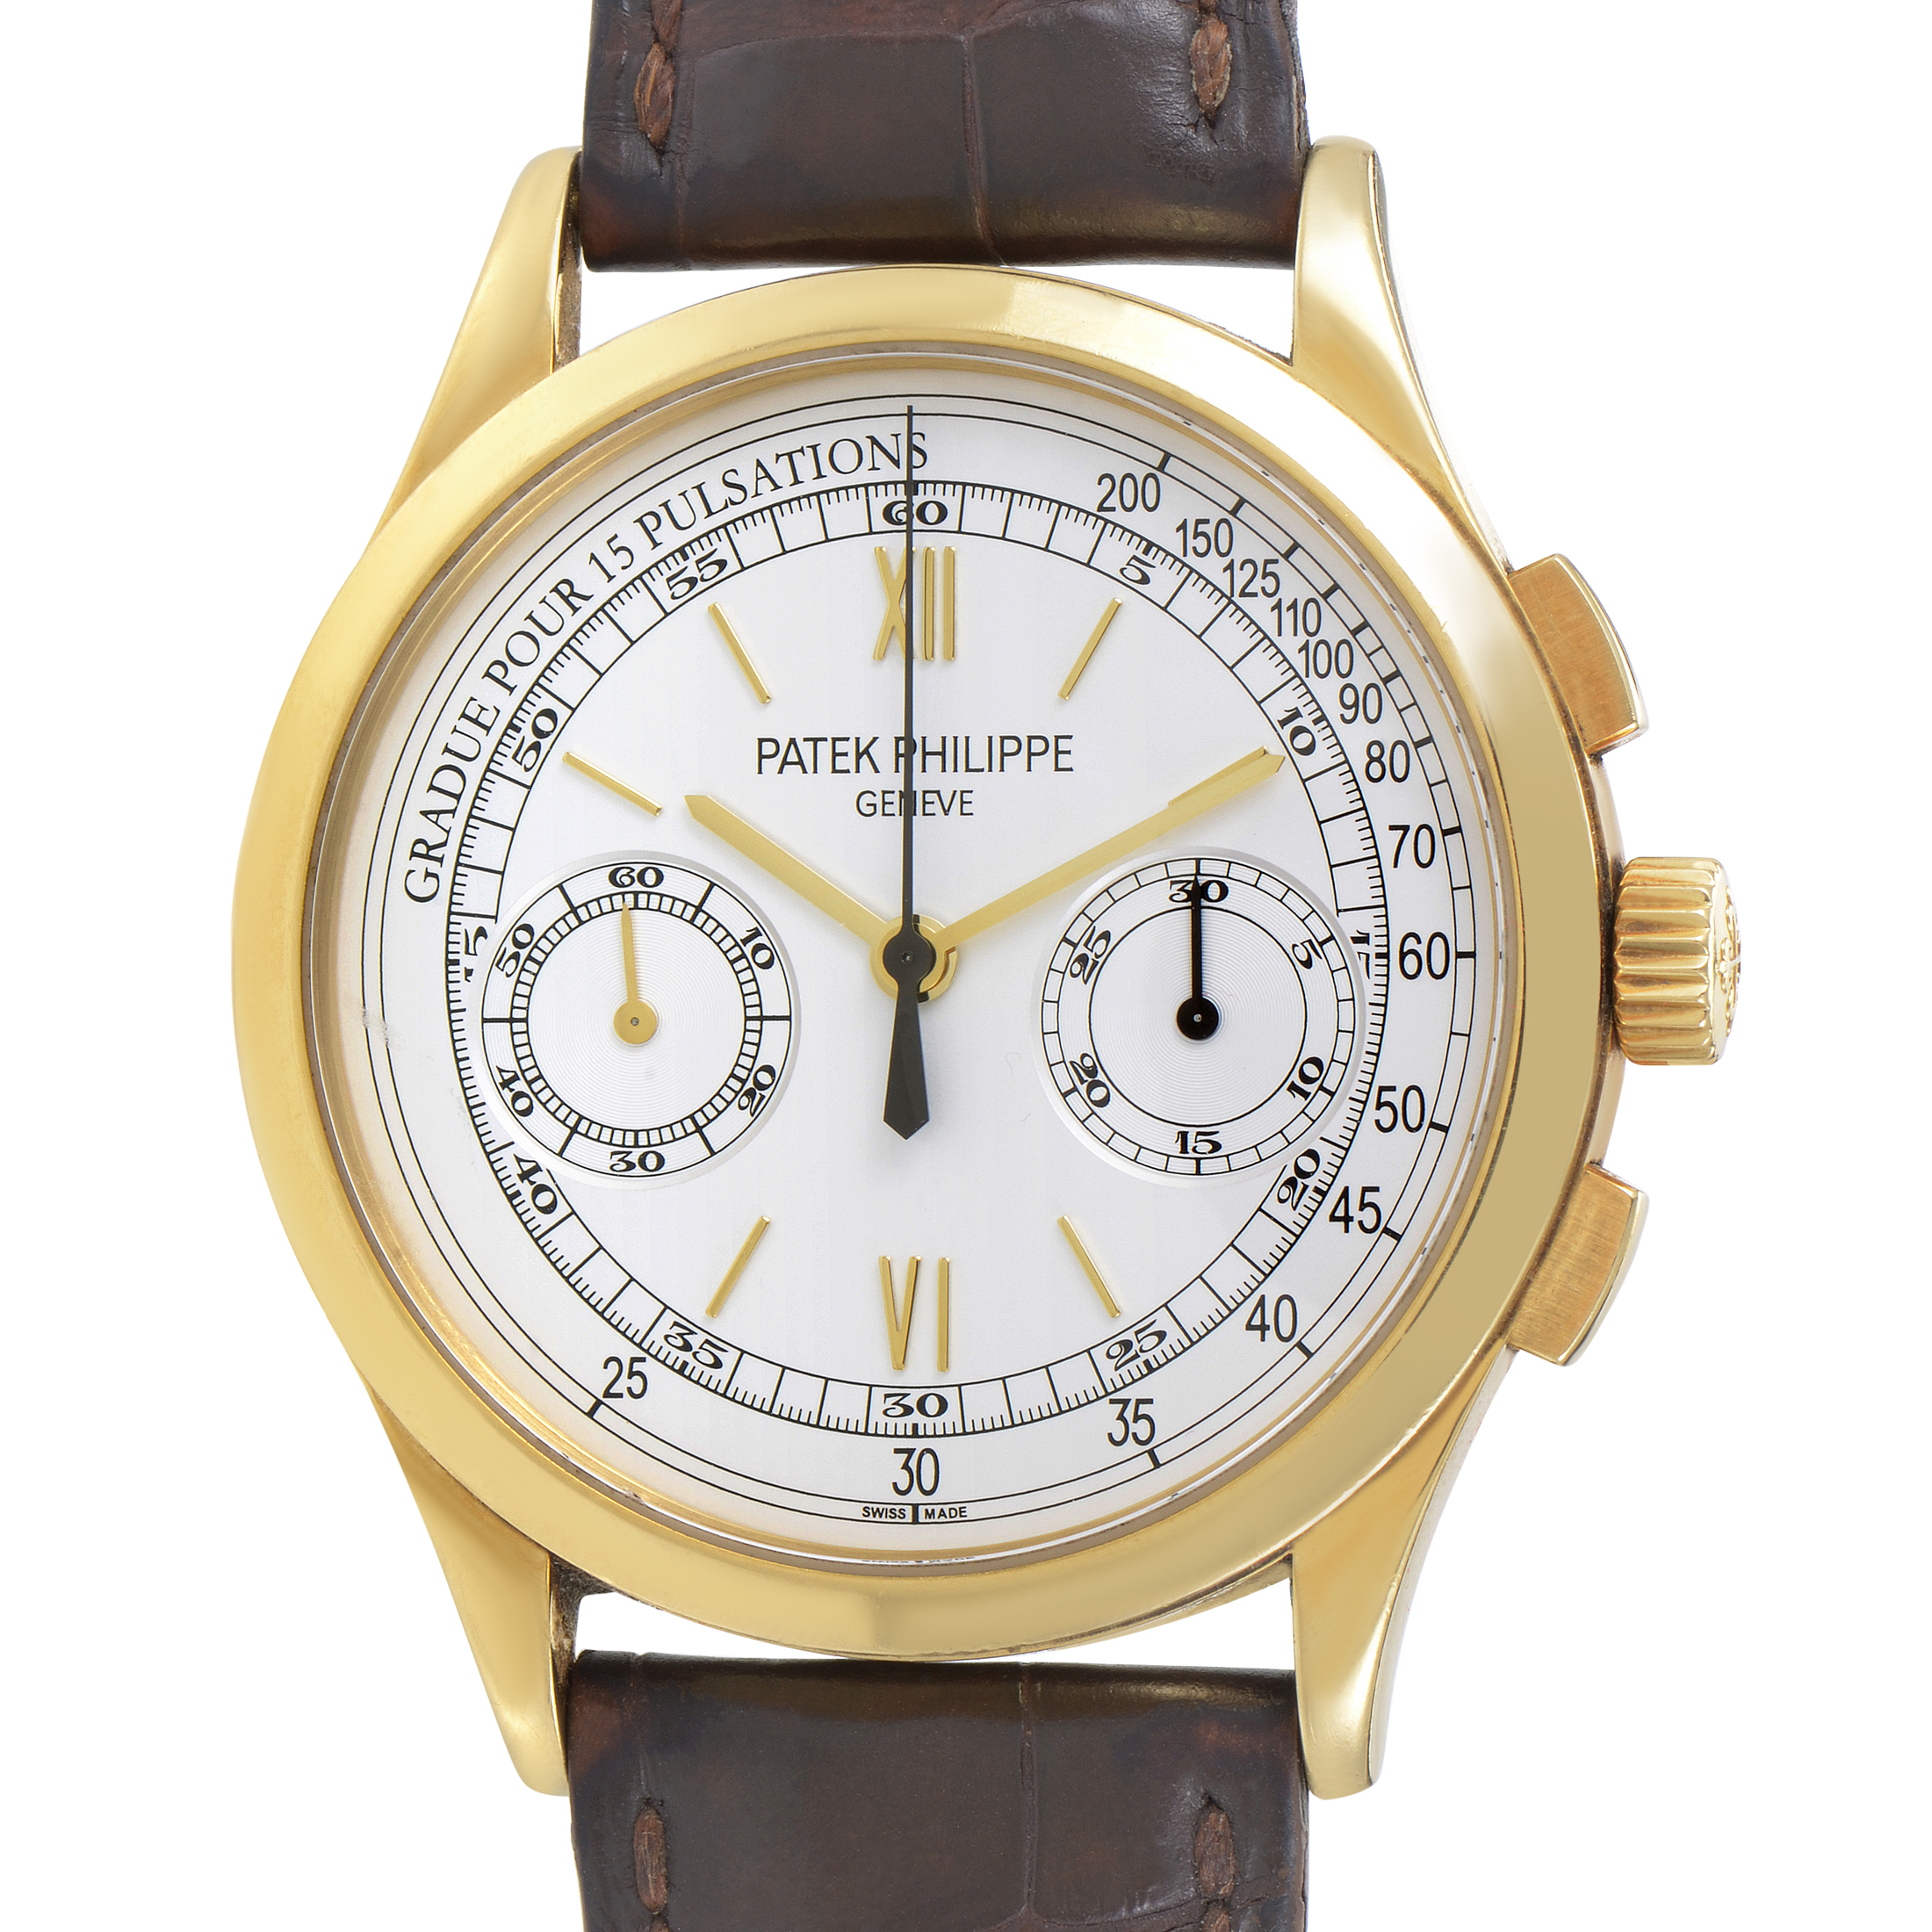 Patek Philippe Men's Gold Manually Wound Classic Chronograph Watch 5170J-001